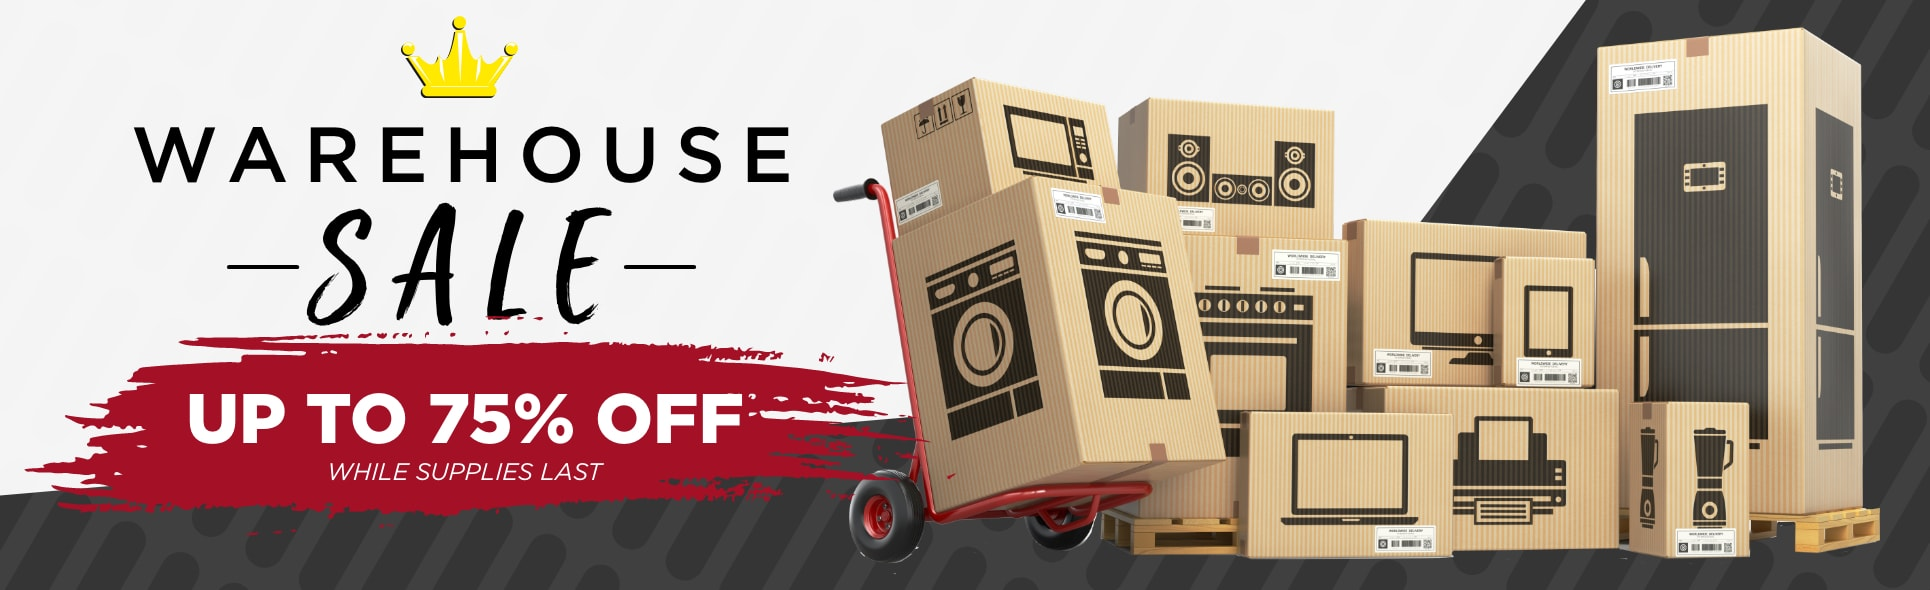 Warehouse Sale - Up to 75% off